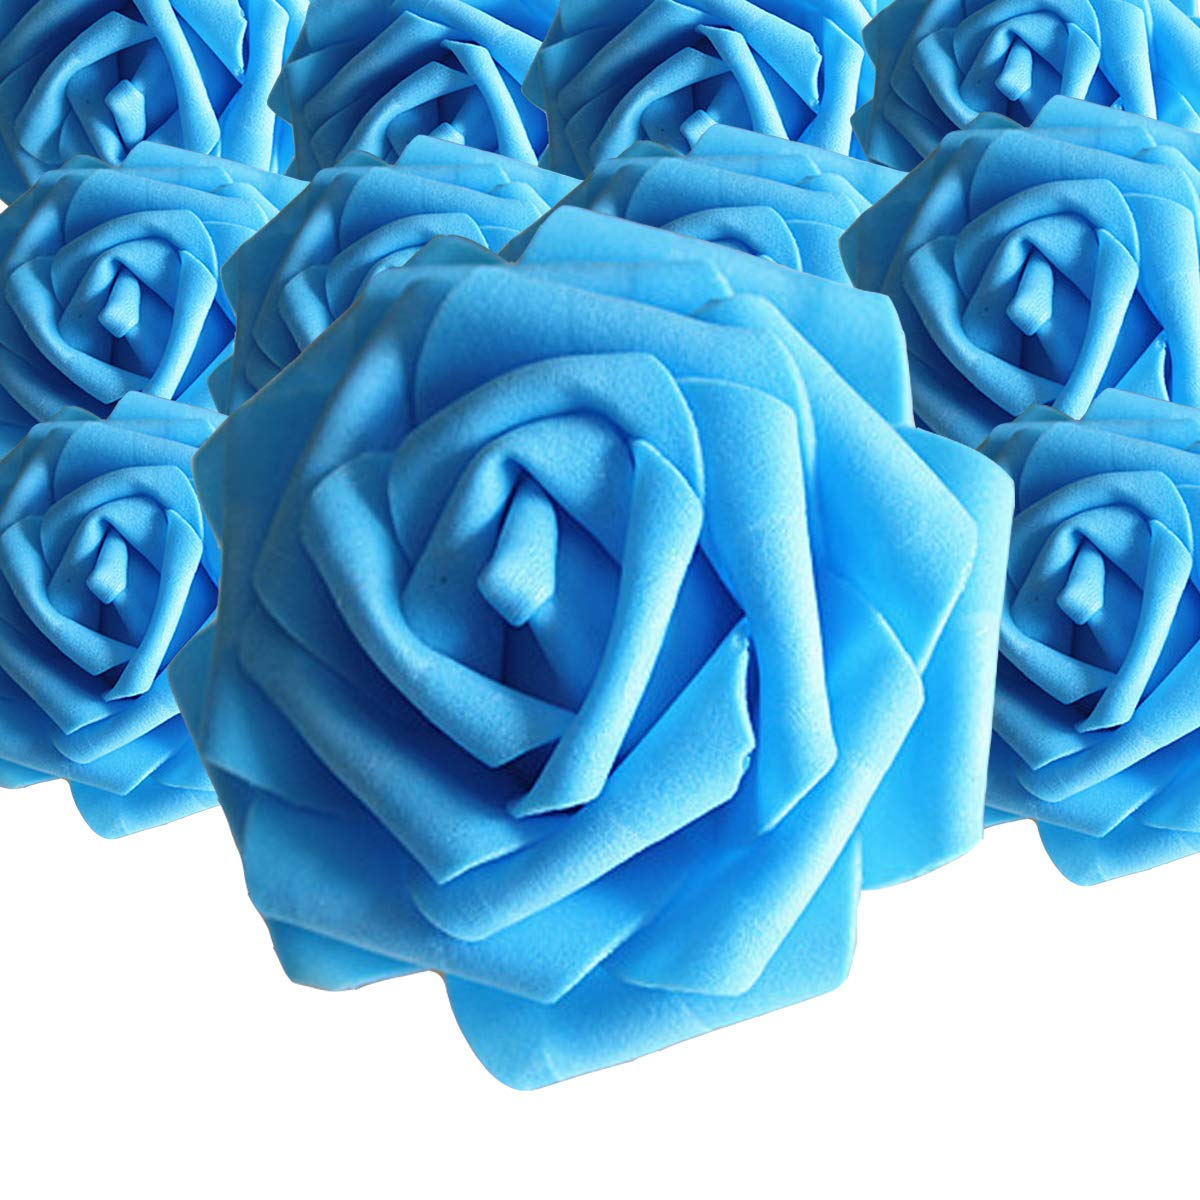 HEBE 50pcs Artificial Roses Flowers Real Looking Fake Roses Artificial Foam Roses Decoration DIY for Wedding Bouquets Centerpieces,Blue